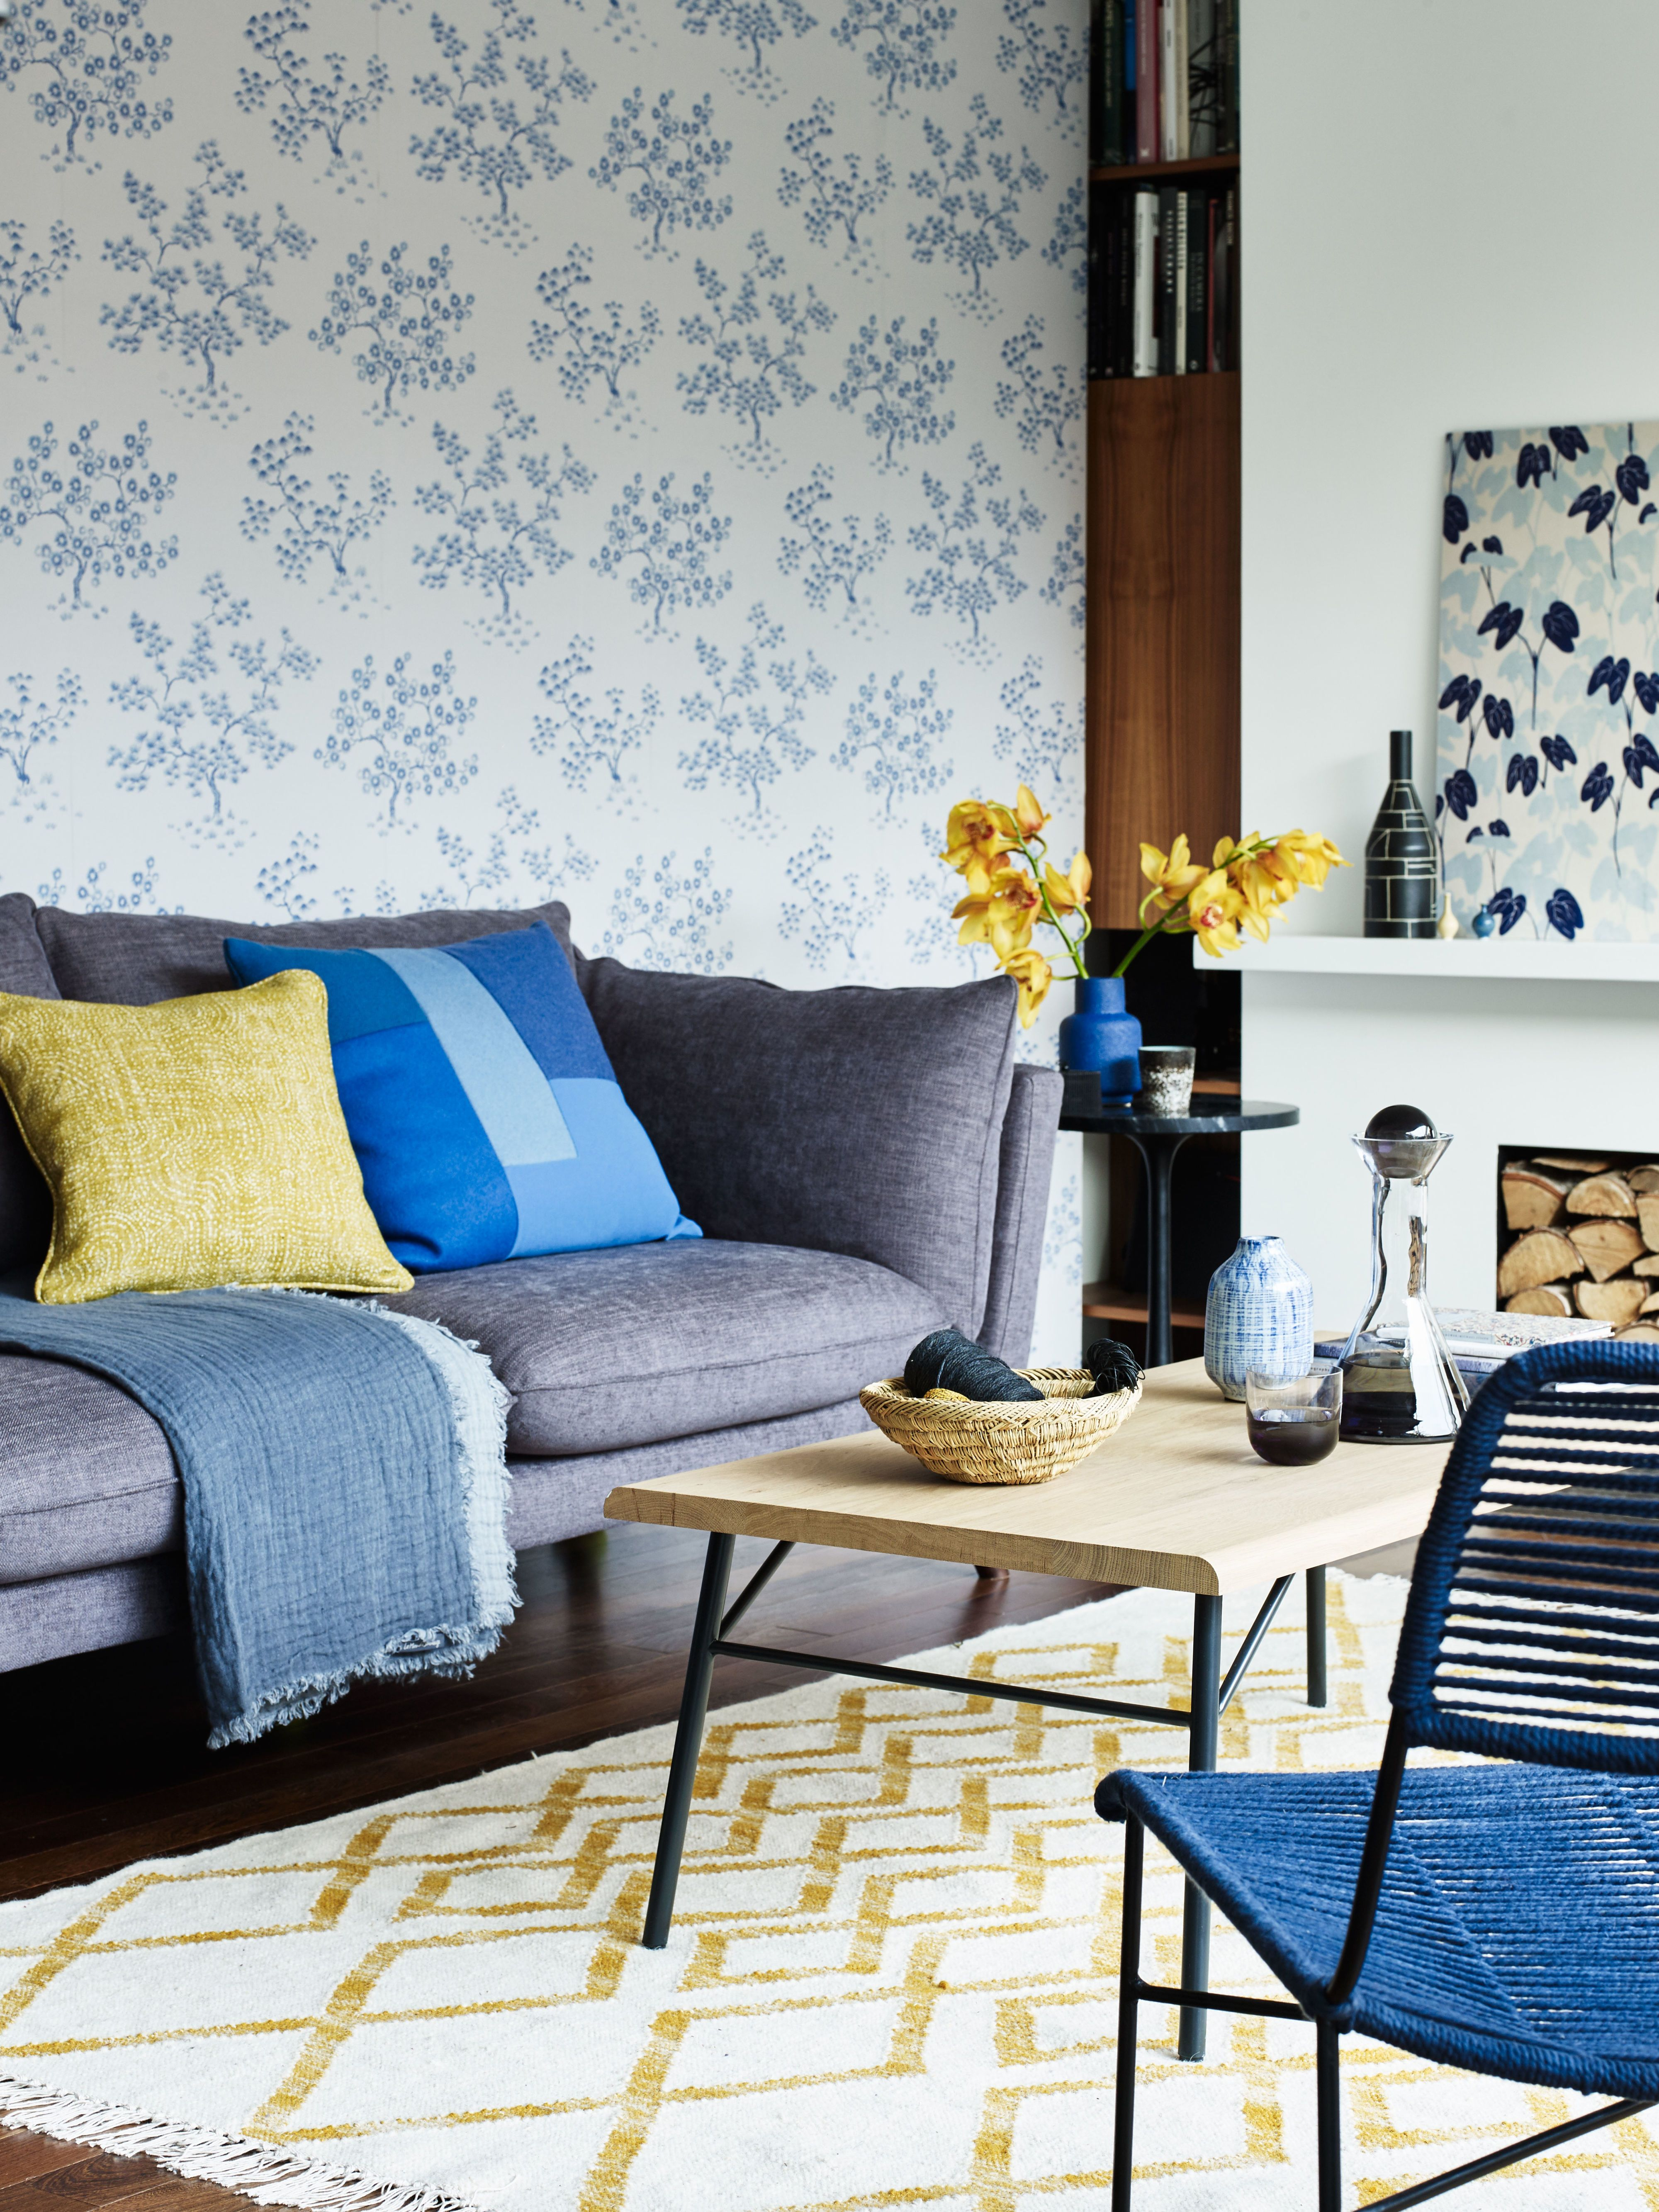 Good Modern Oriental Decorating Ideas   Style Inspiration Styling By Marisa  Daley. Styling Assistant: Amy